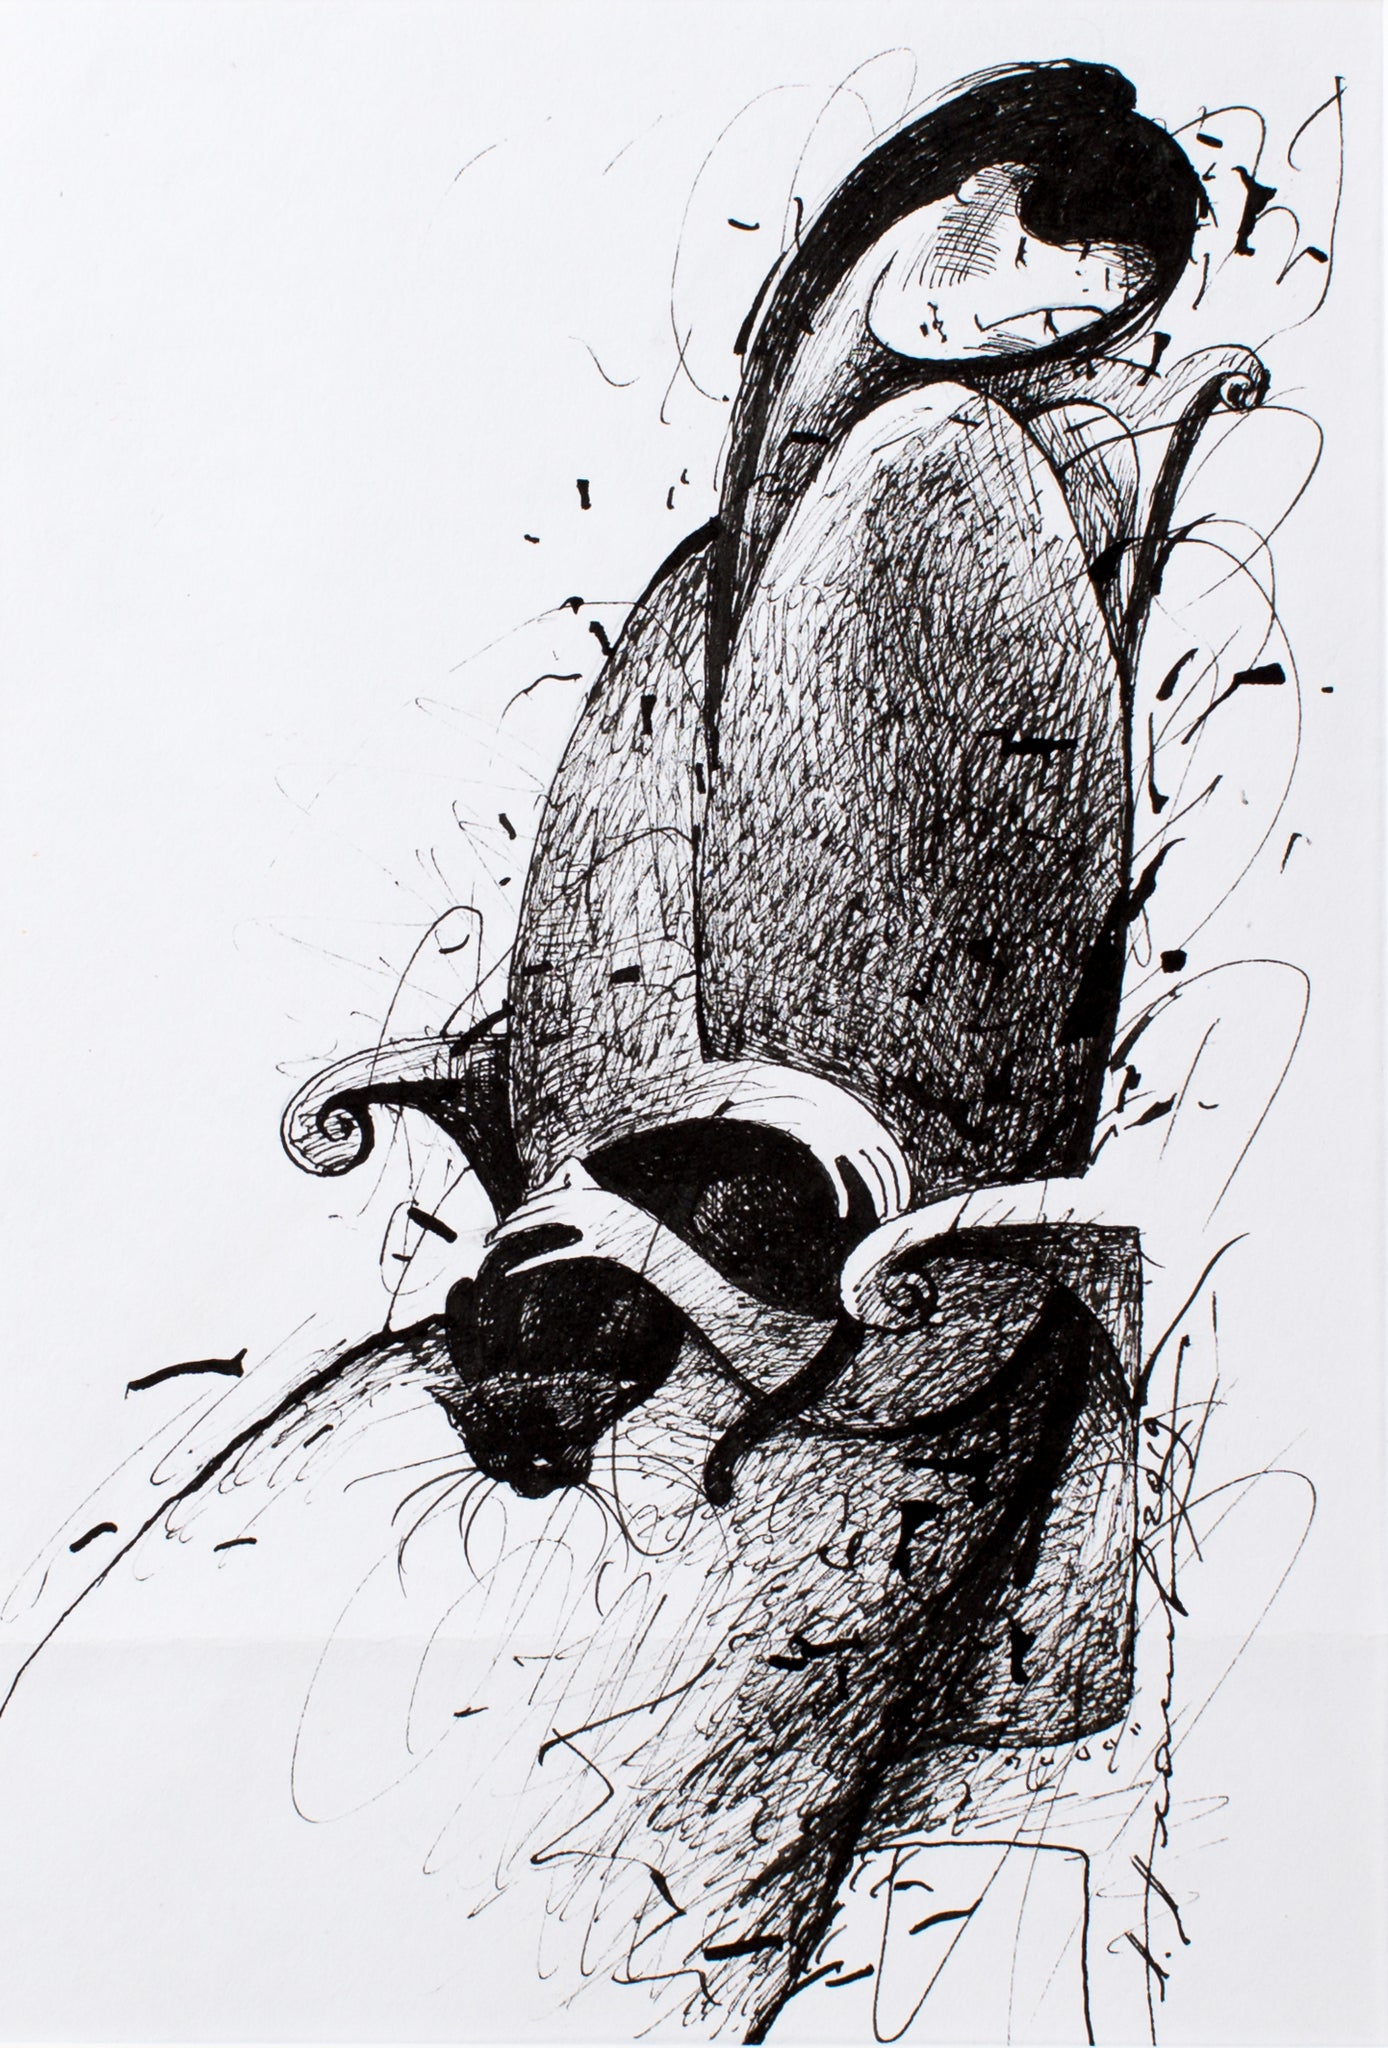 Peacefulness by Aleksander Ahanov, 35.5cm*44.5cm, ink drawing